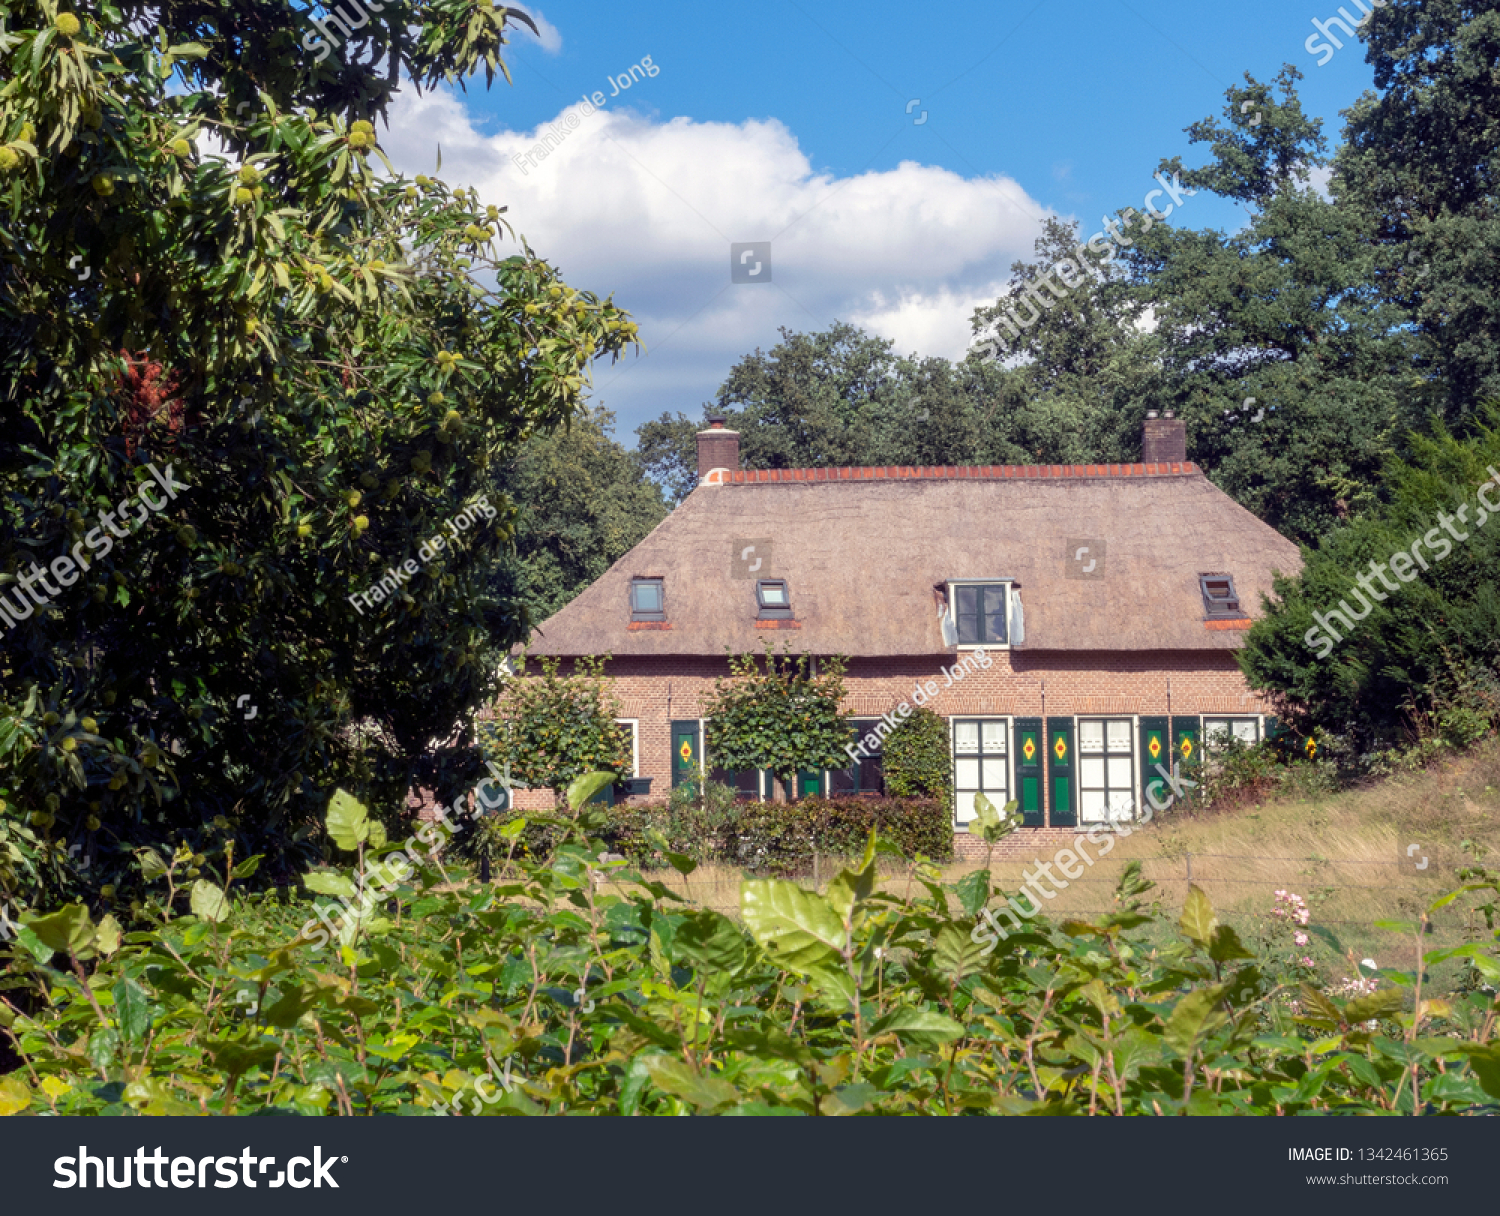 Rozendaal, The Netherlands, September 9, 2018: Porter's house at the castle Rosendael located in Rozendaal in the Netherlands #1342461365